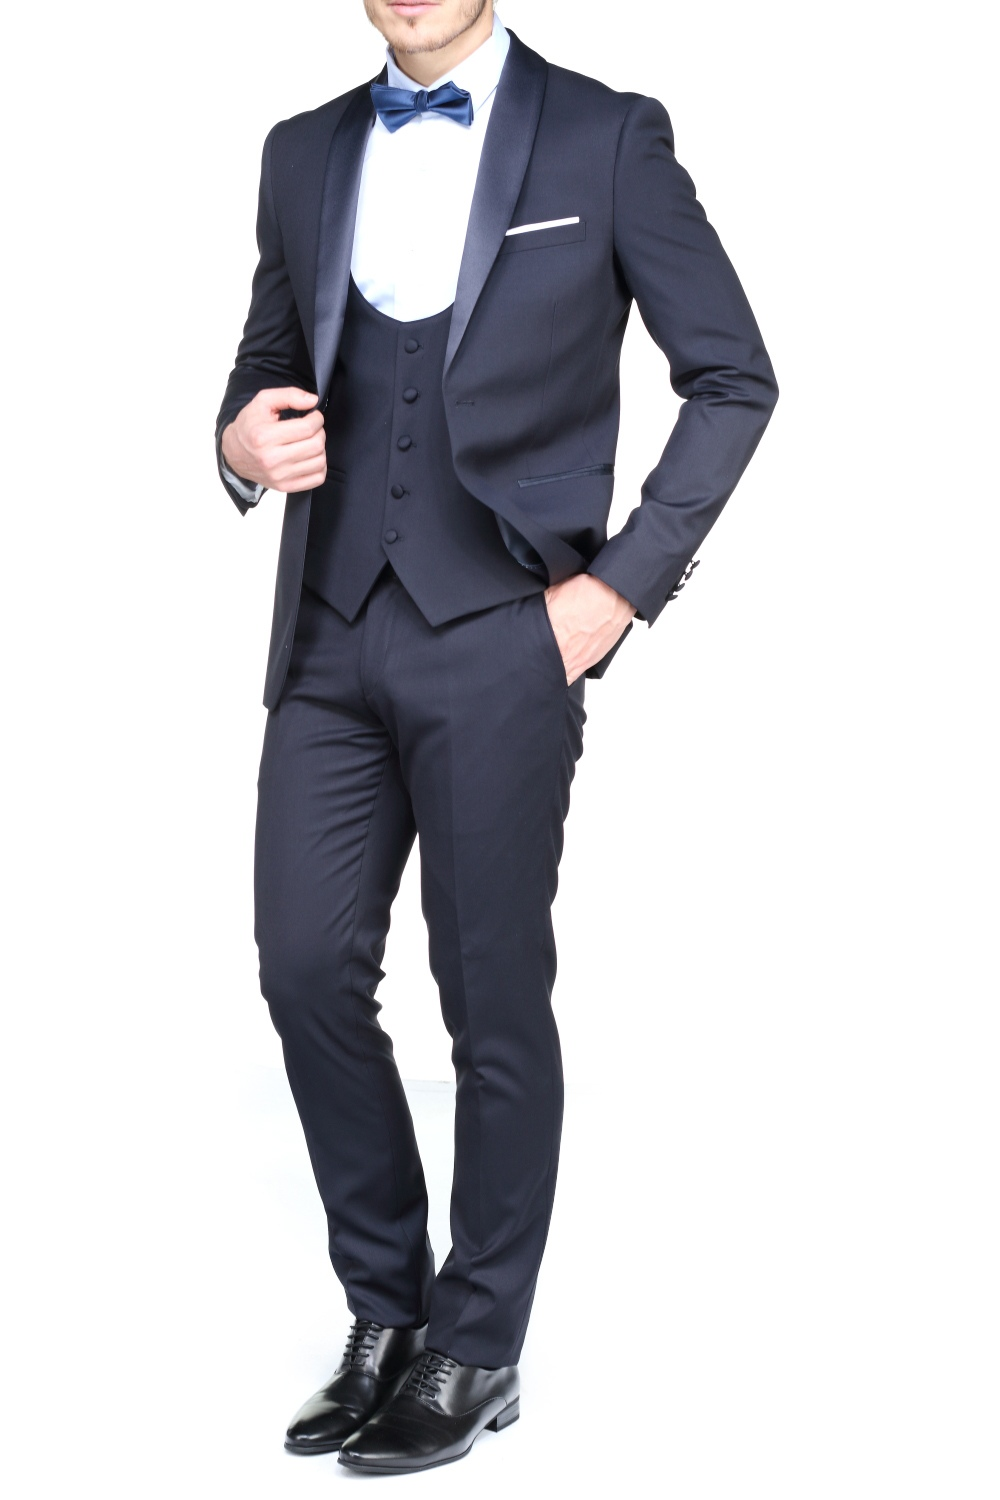 http://www.leadermode.com/135018/leader-mode-zc17-32-col-chal-3-pieces-25-navy-blue.jpg